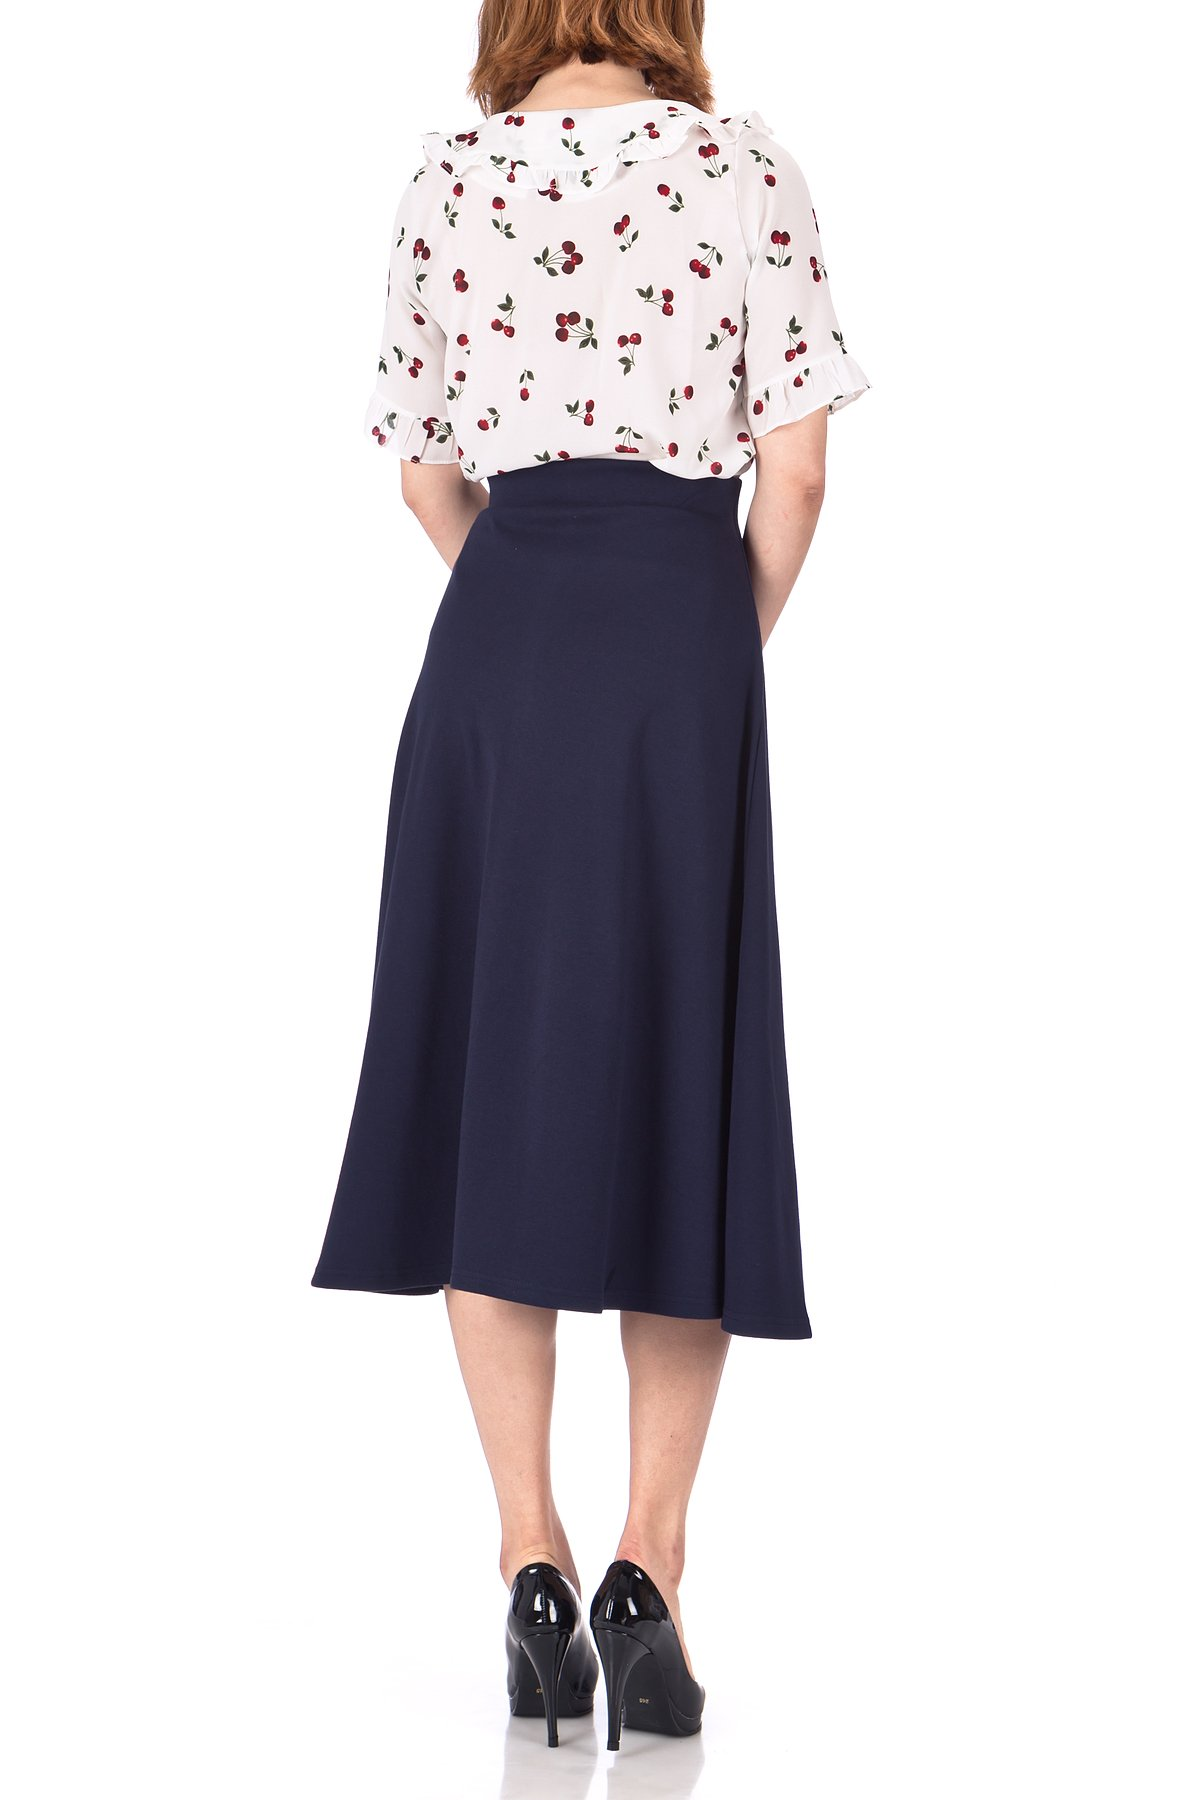 Elastic Waist A line Flared Long Skirt Navy 05 1